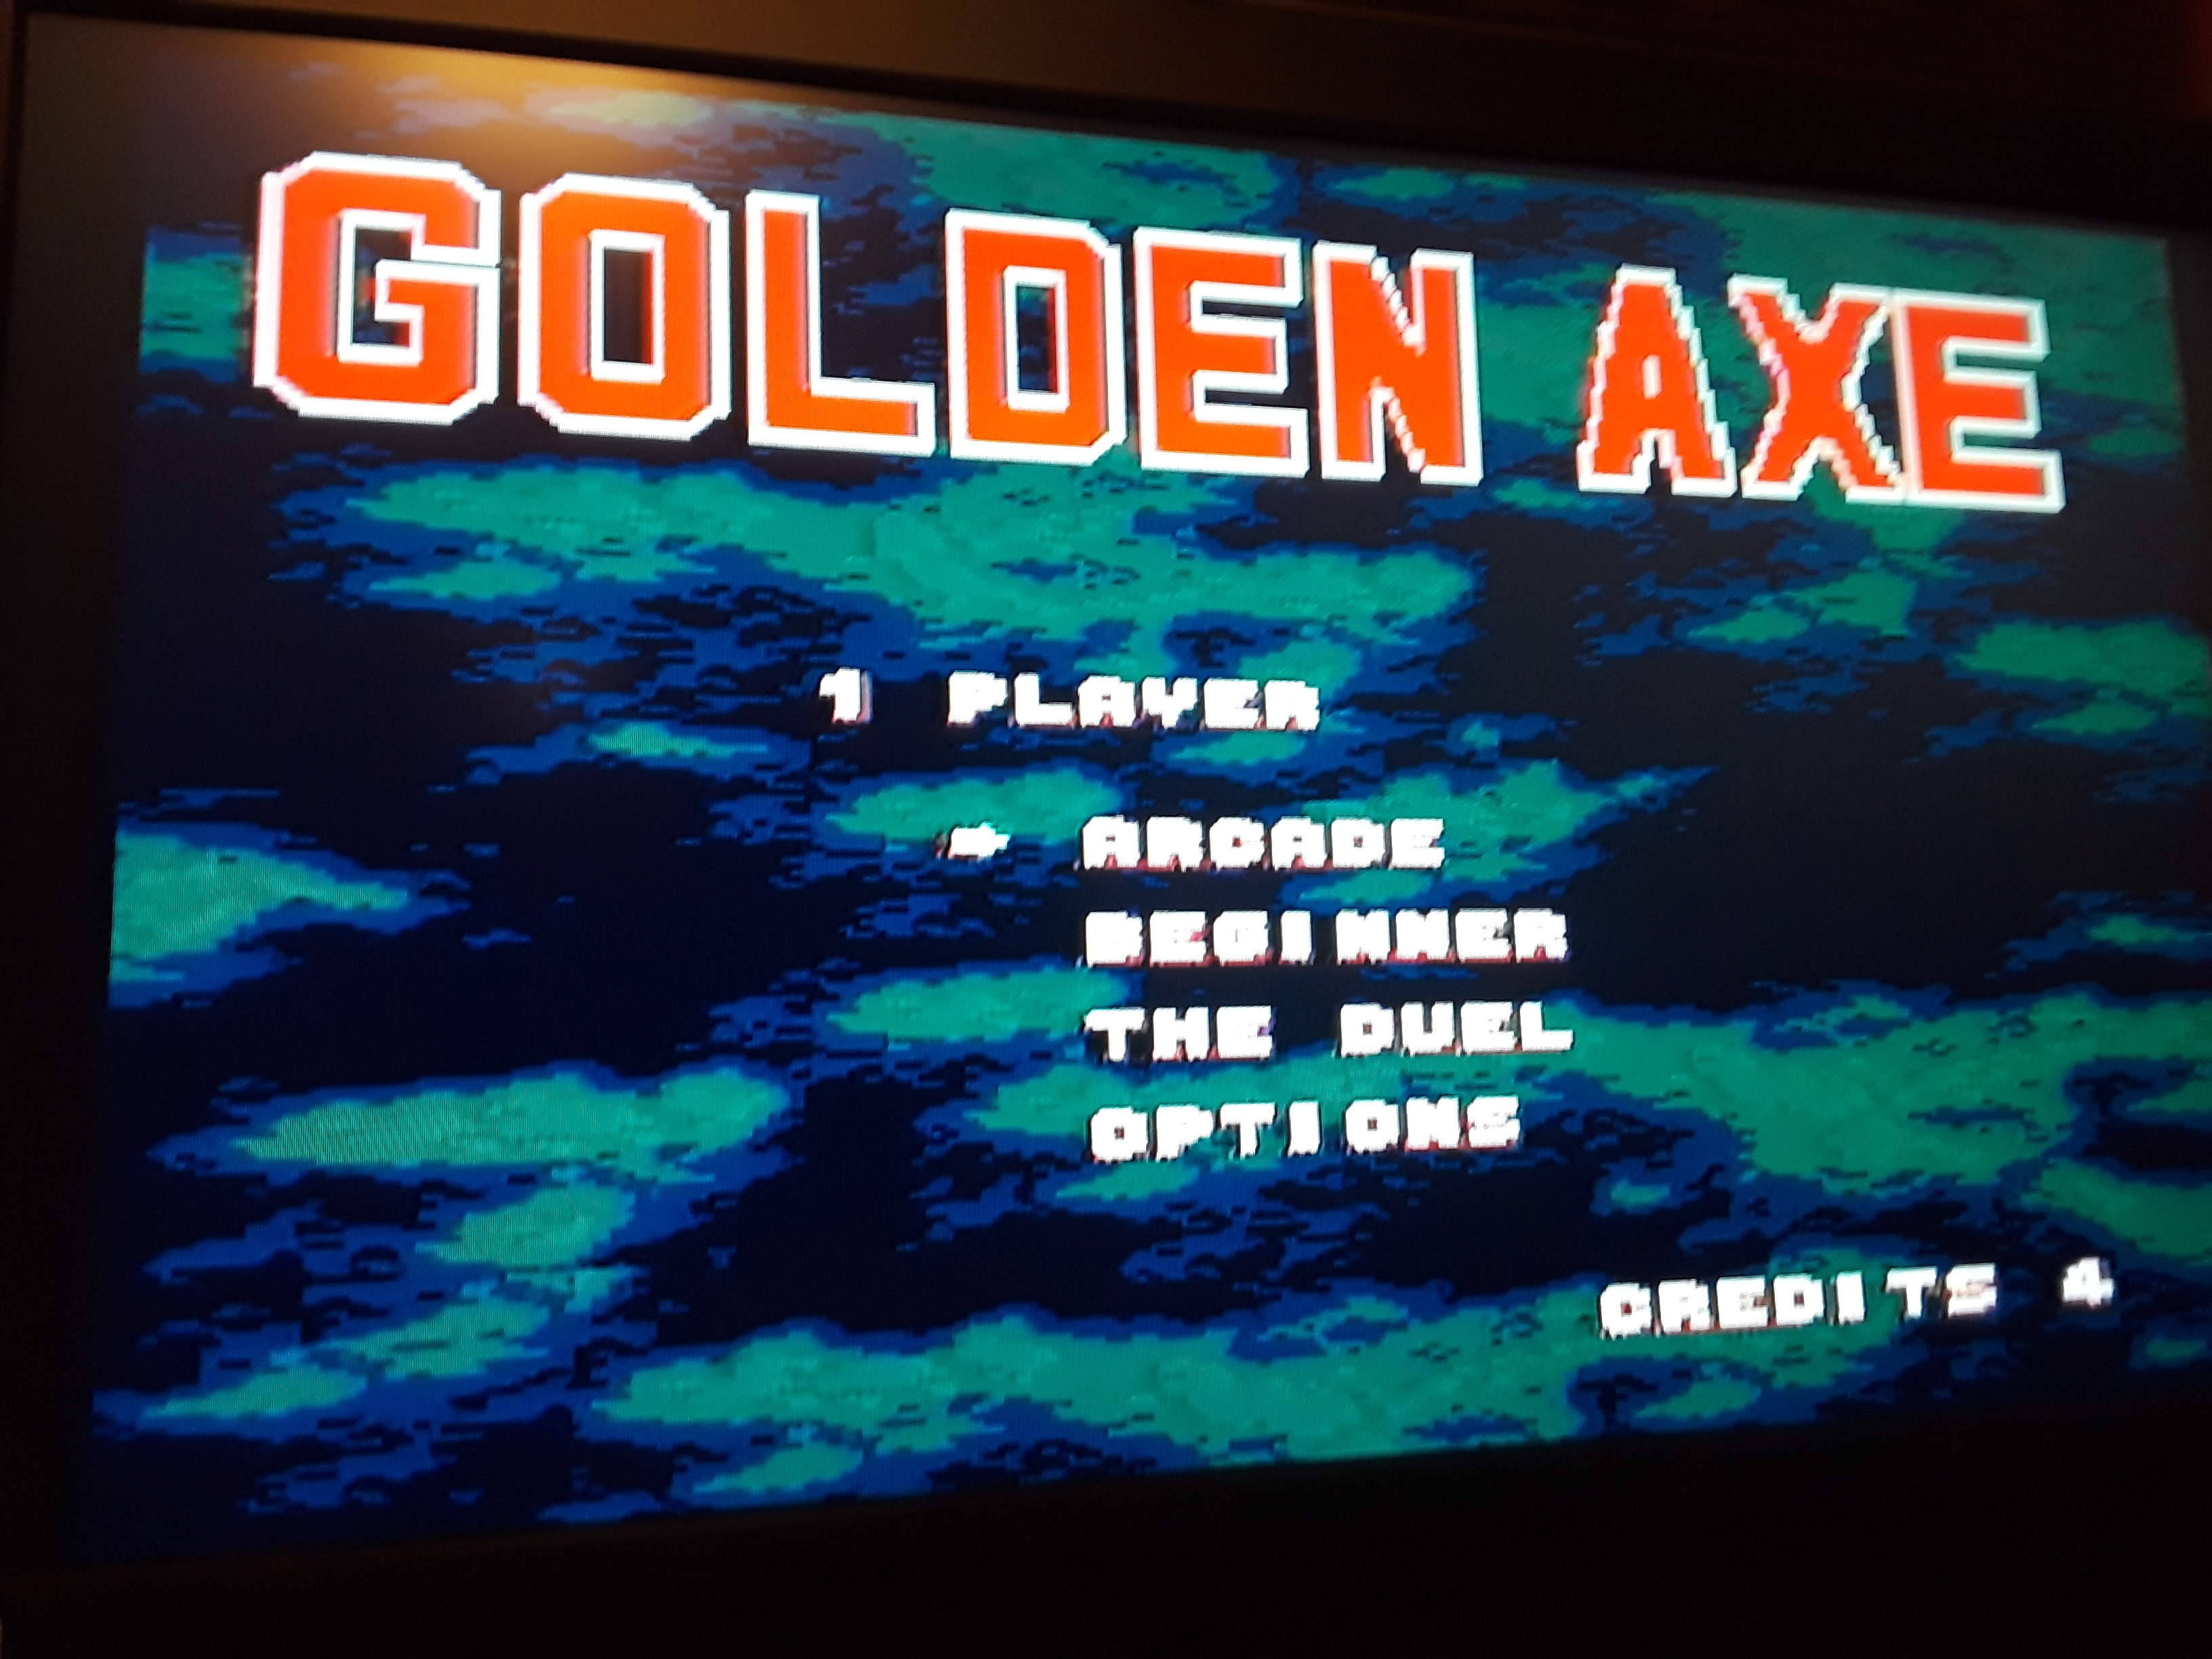 Golden Axe [Arcade] 38 points